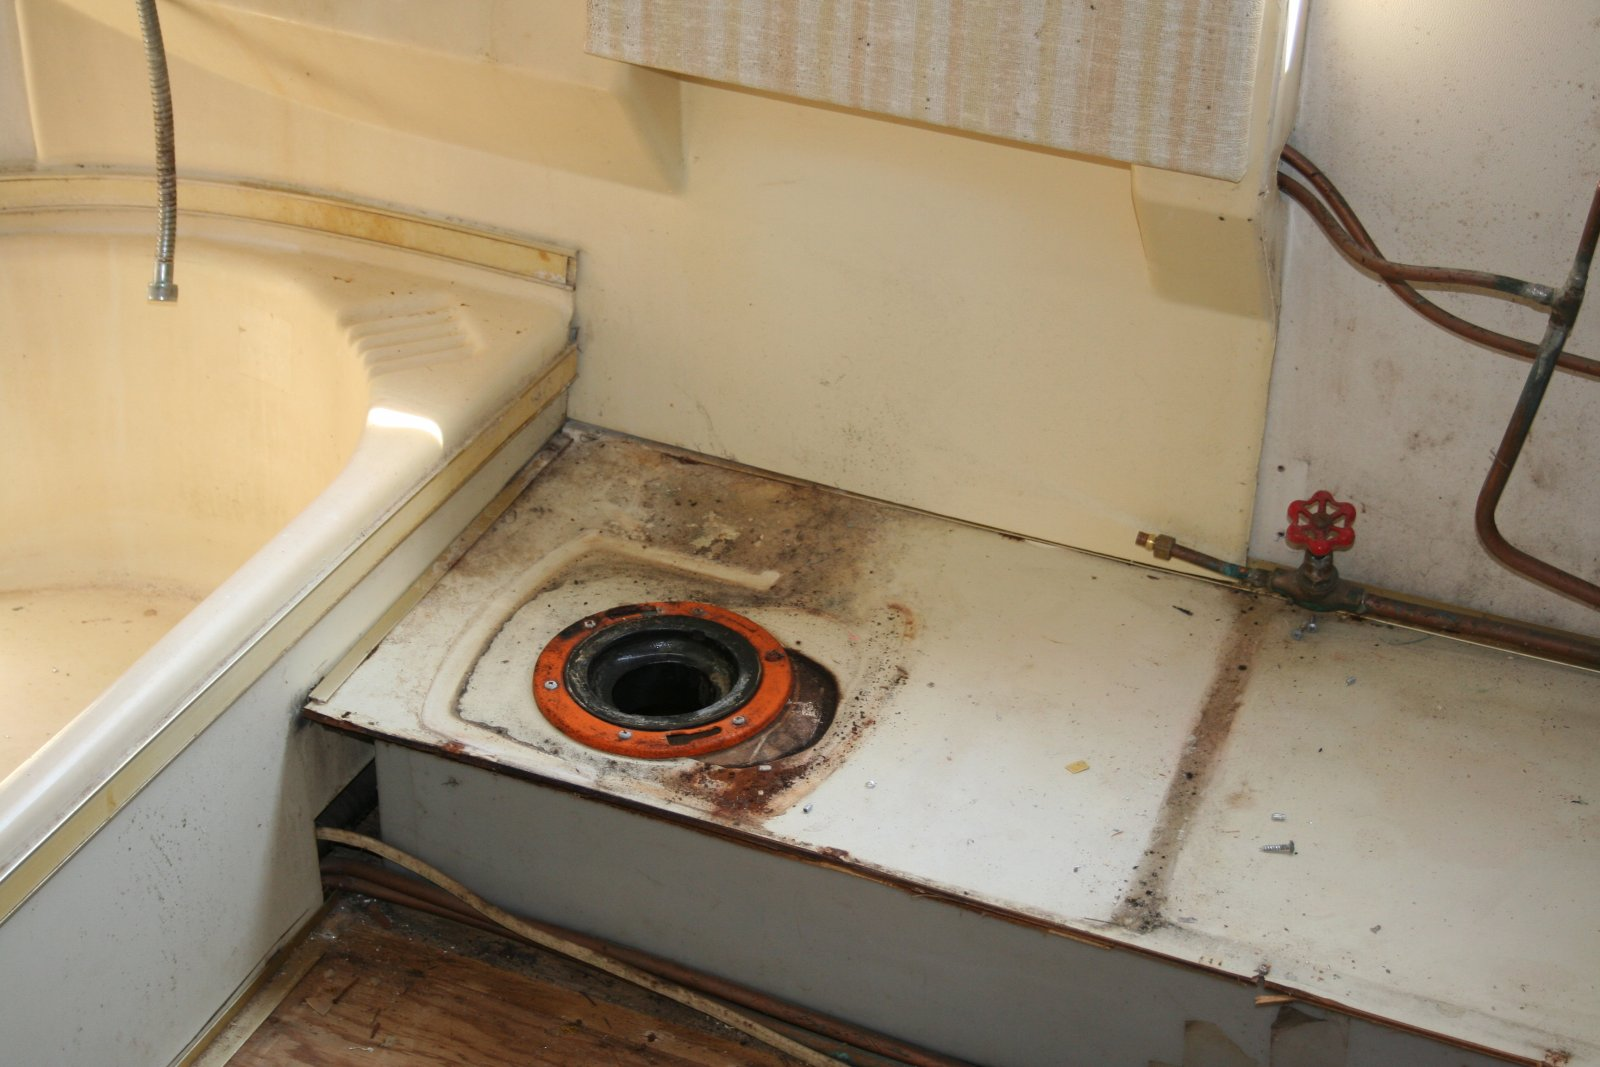 Click image for larger version  Name:argosy toilet 2.jpg Views:271 Size:200.4 KB ID:160643